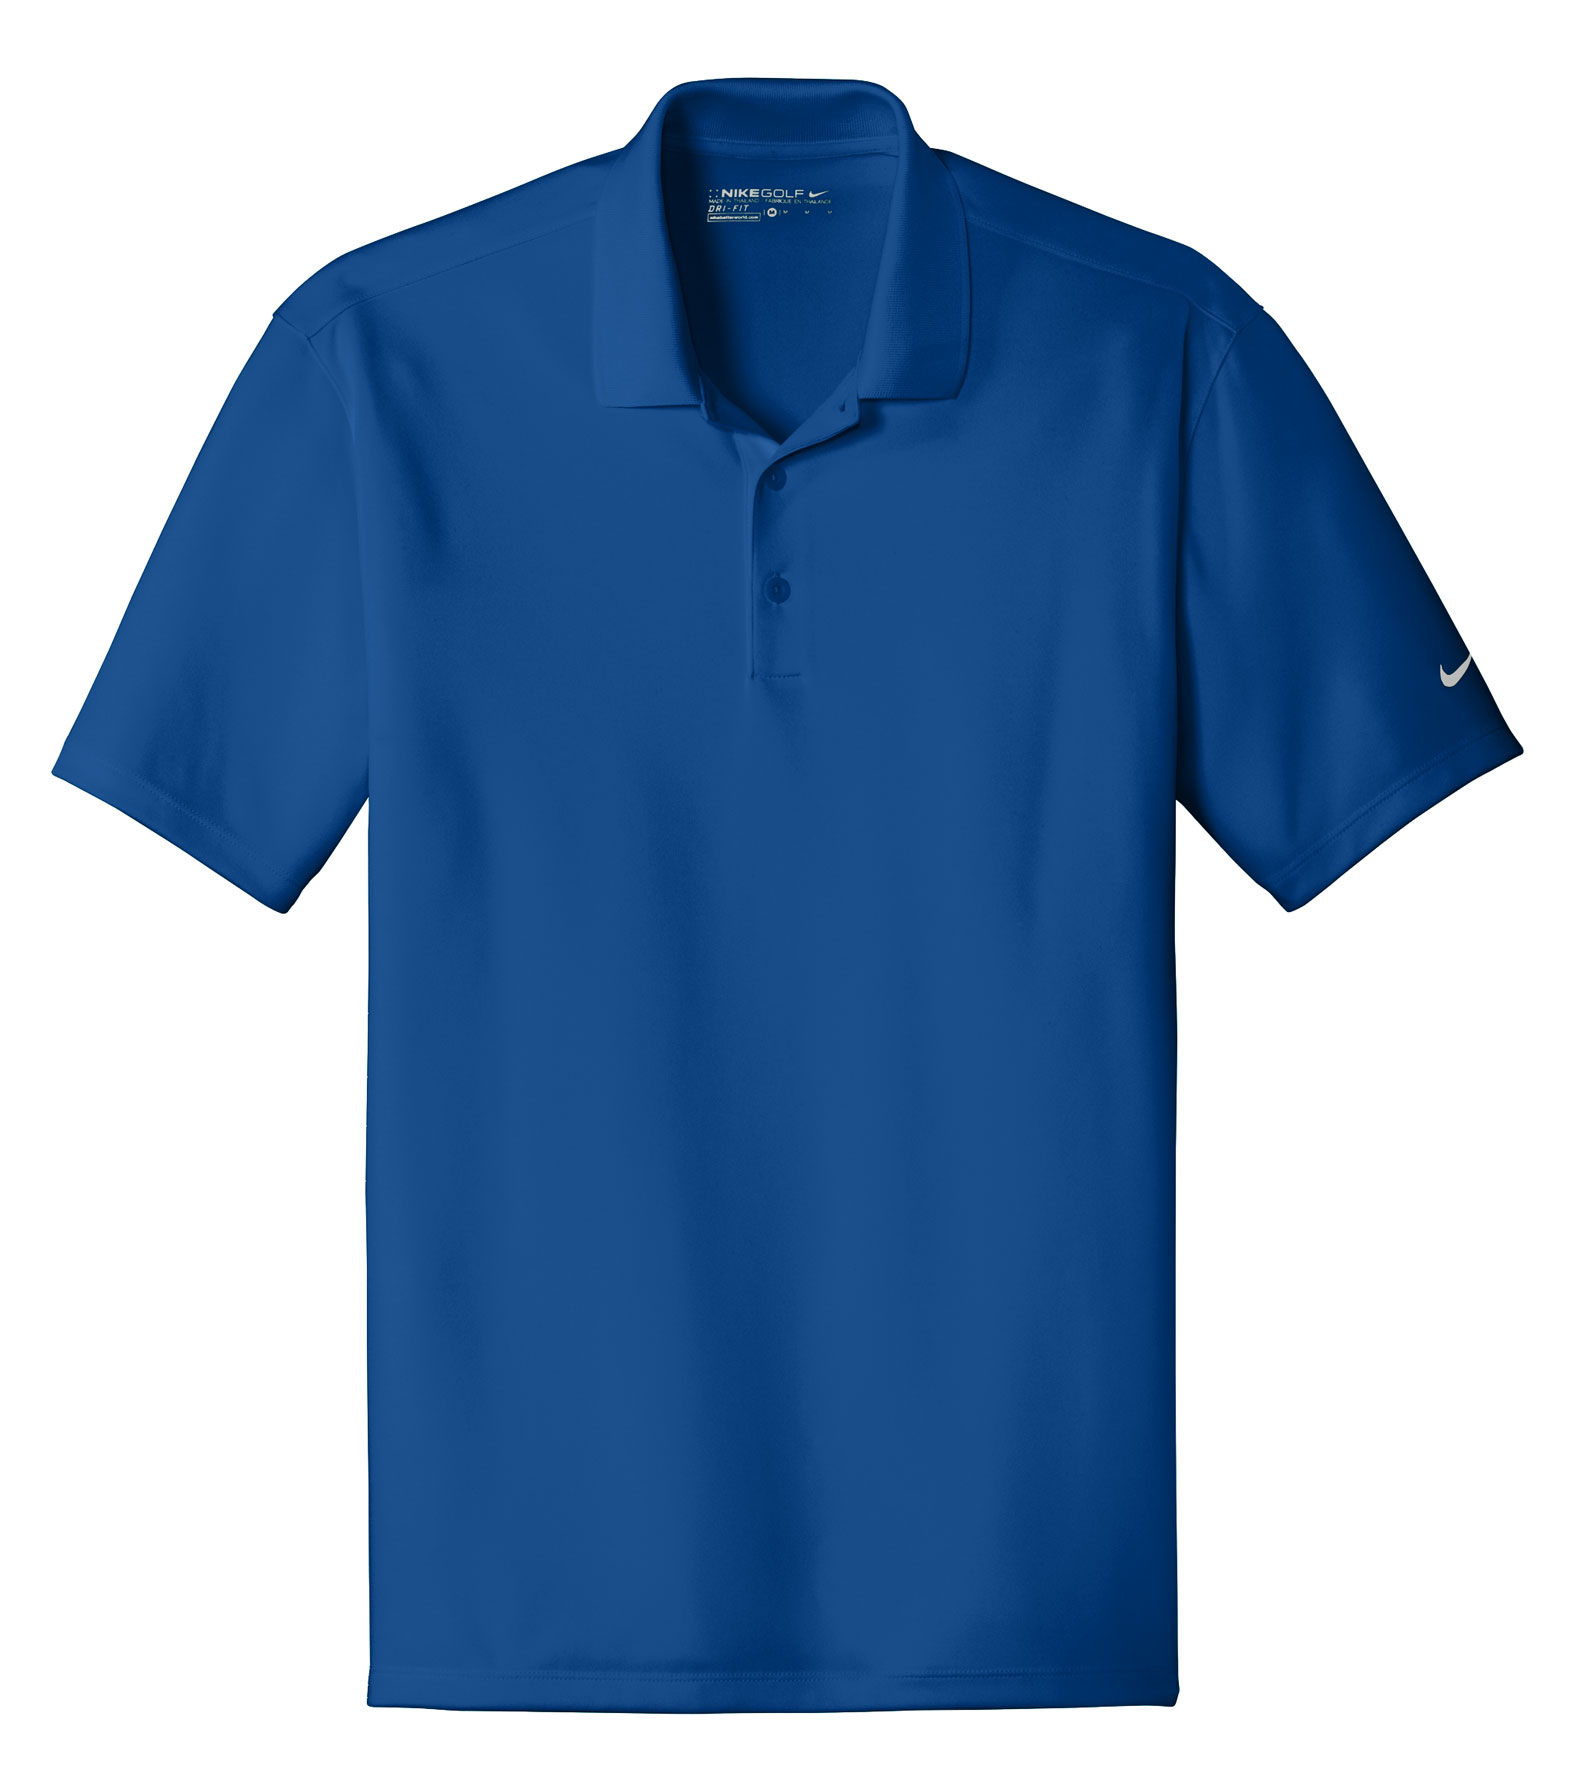 7366d2c1 Custom Nike Dri Fit Golf Shirts | LogoSportswear